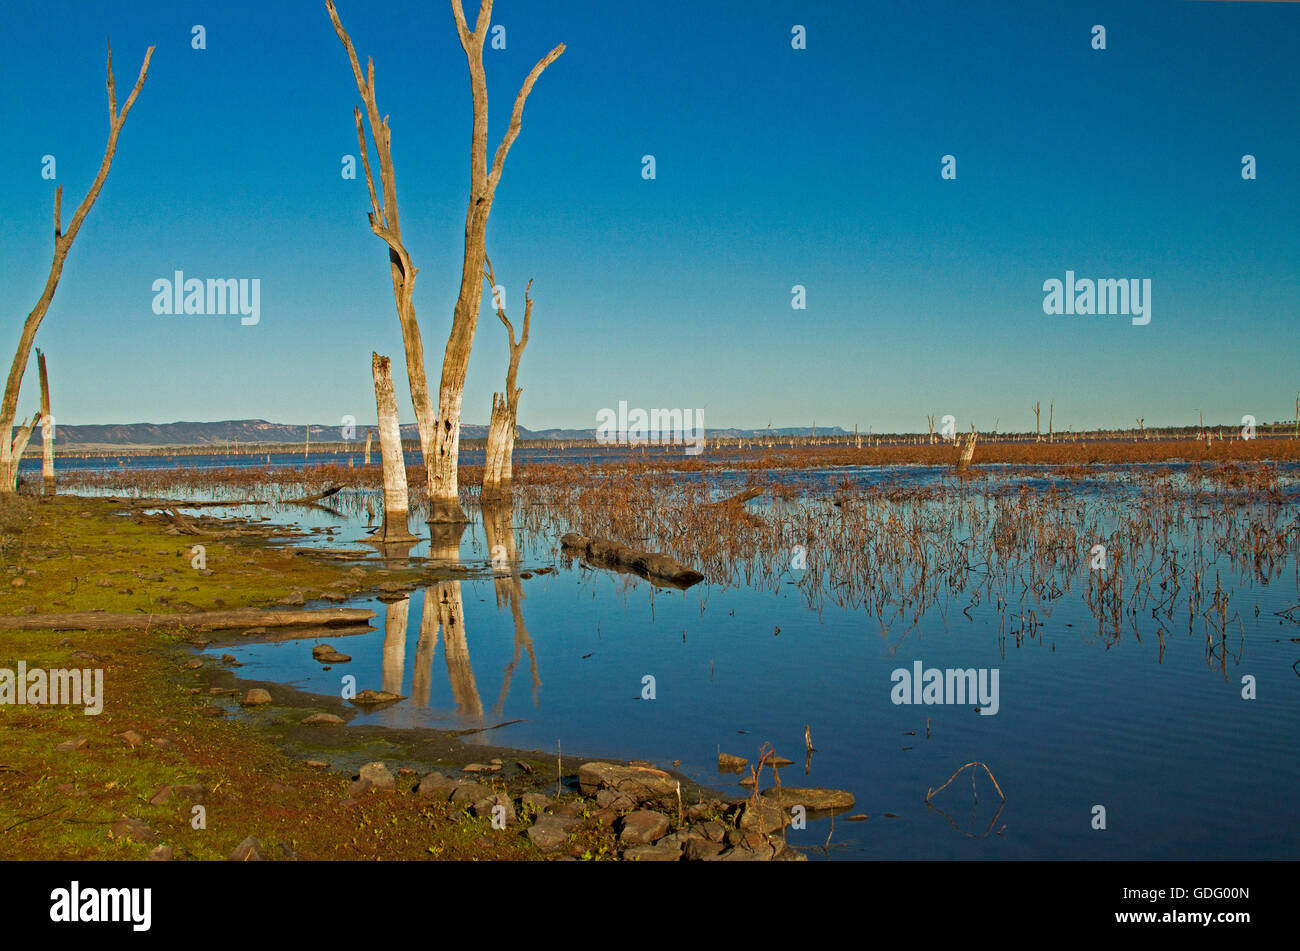 Vast calm blue waters of Lake Nuga Nuga with dead trees reflected in mirror surface under blue sky in outback Qld Stock Photo